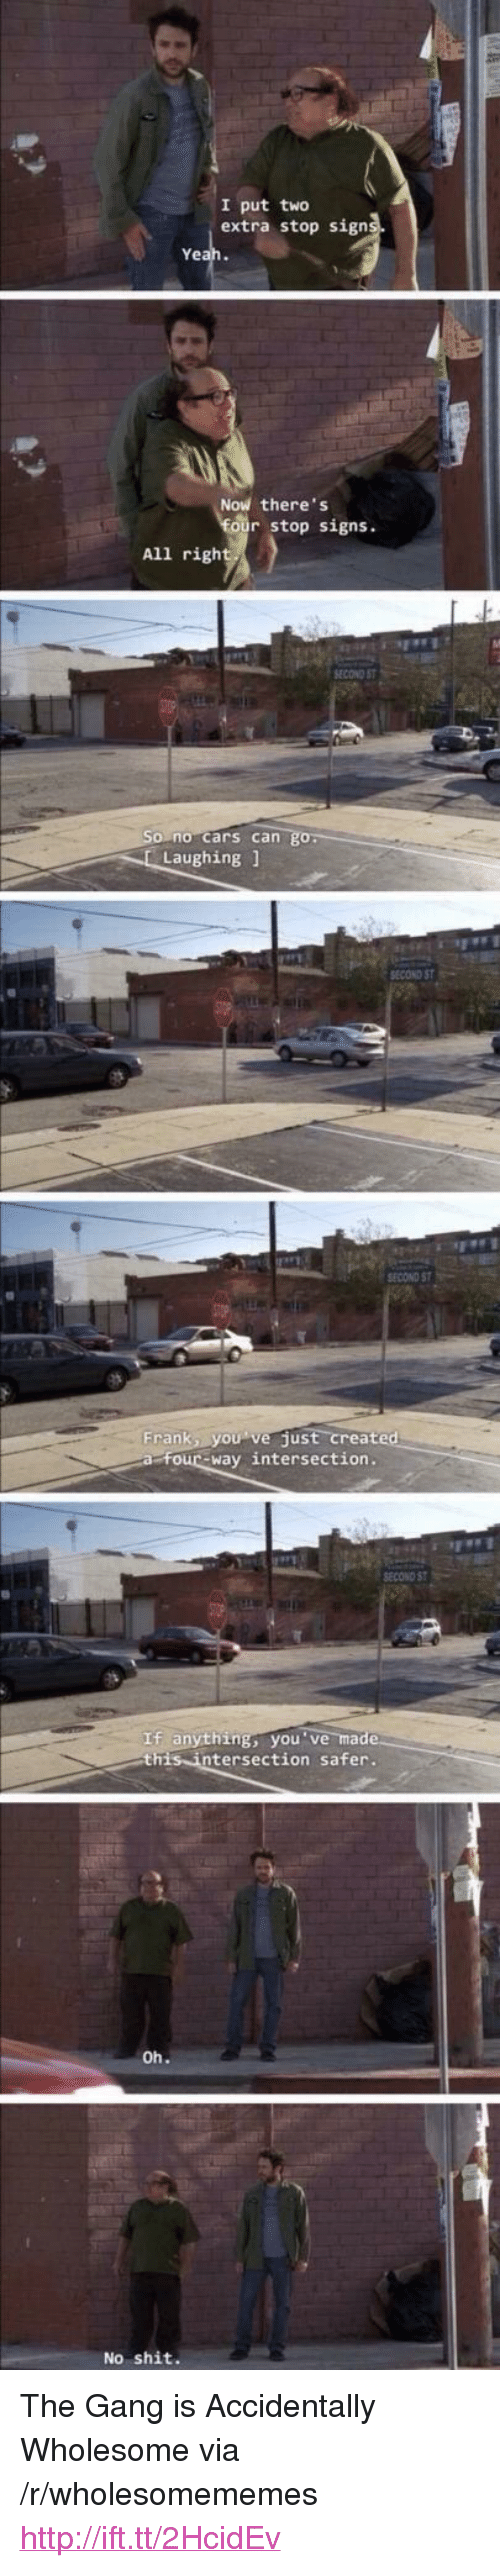 "intersection: I put two  extra stop sign  Ye  Now there's  stop signs.  All righ  no cars can  Laughing1  SECOND ST  Frankly。 vejust-create  four-way intersection.  SECOND ST  If anything, you've ma  this intersection safer.  No shit. <p>The Gang is Accidentally Wholesome via /r/wholesomememes <a href=""http://ift.tt/2HcidEv"">http://ift.tt/2HcidEv</a></p>"